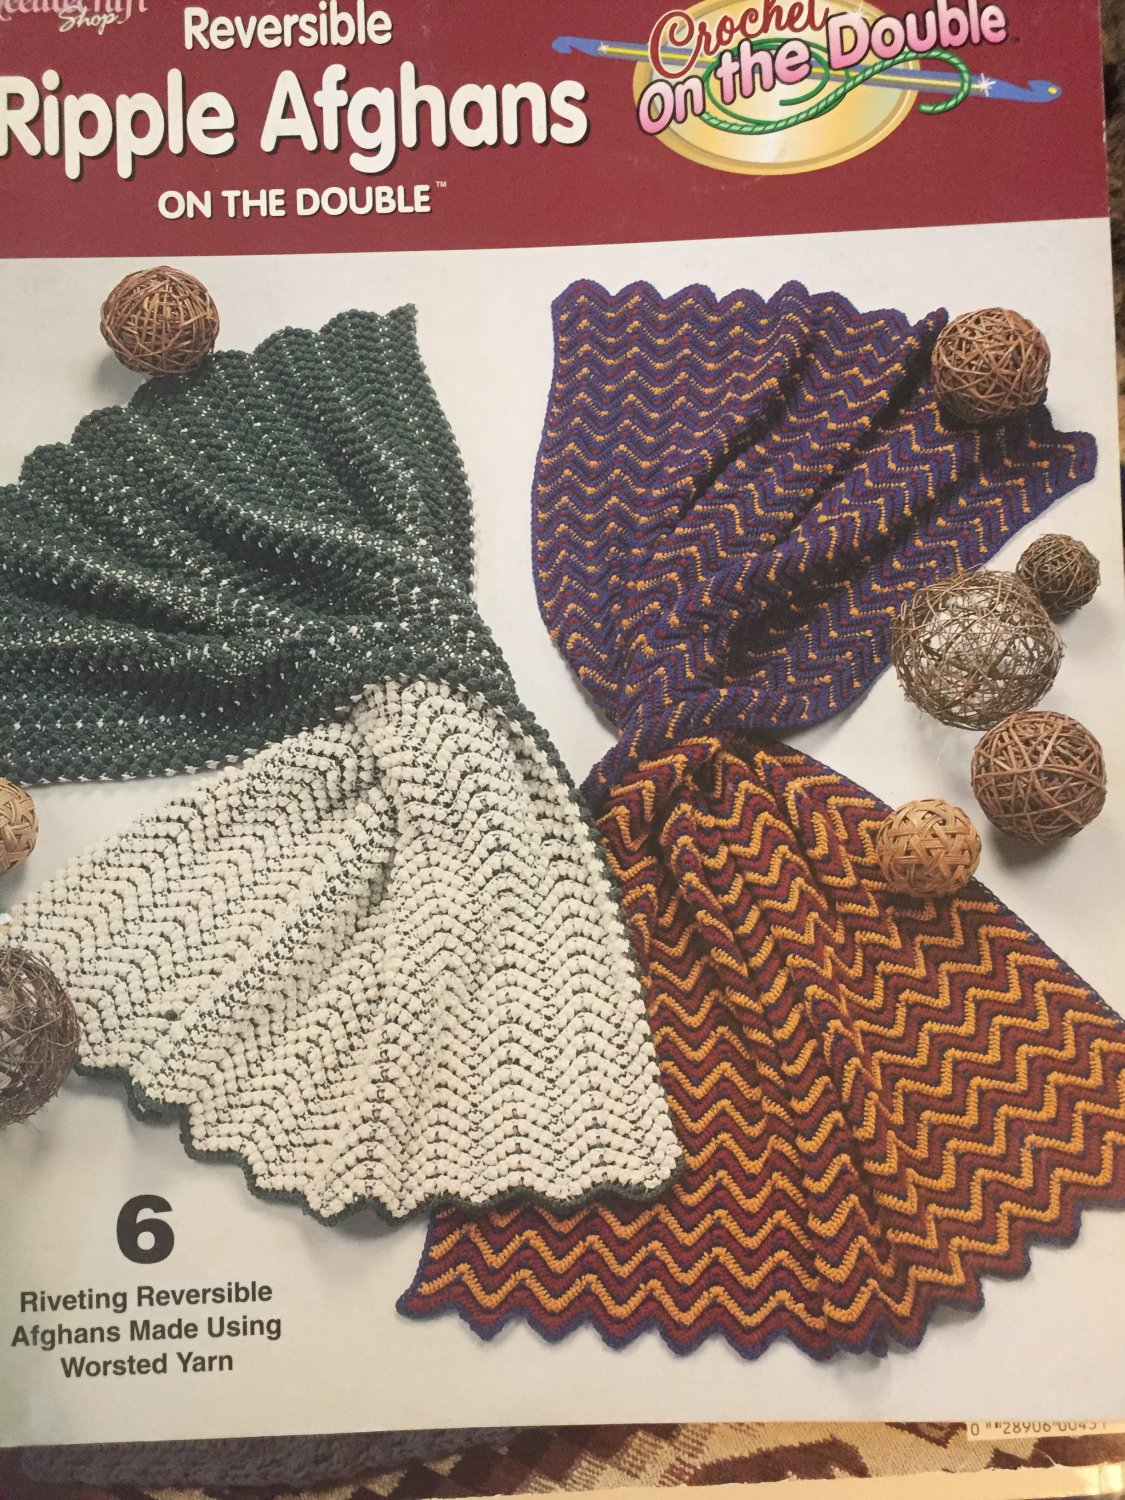 NeedleCraft-Shop 842614 Reversible RIPPLE AFGHANS Crochet On The Double